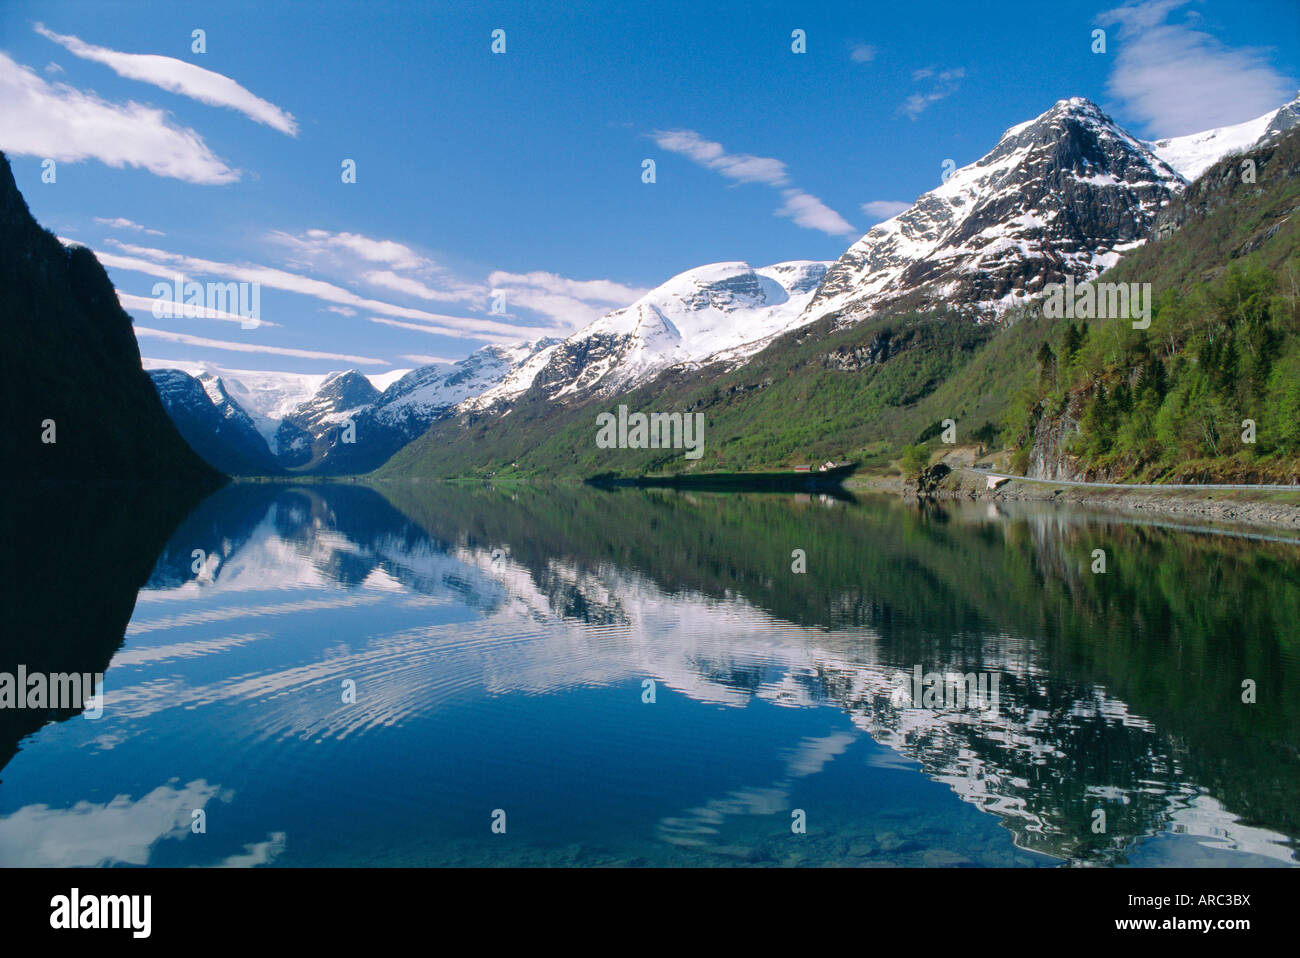 Tranquil scene near Olden, Oldevatnet Lake, Western Fjords, Norway, Scandinavia, Europe - Stock Image